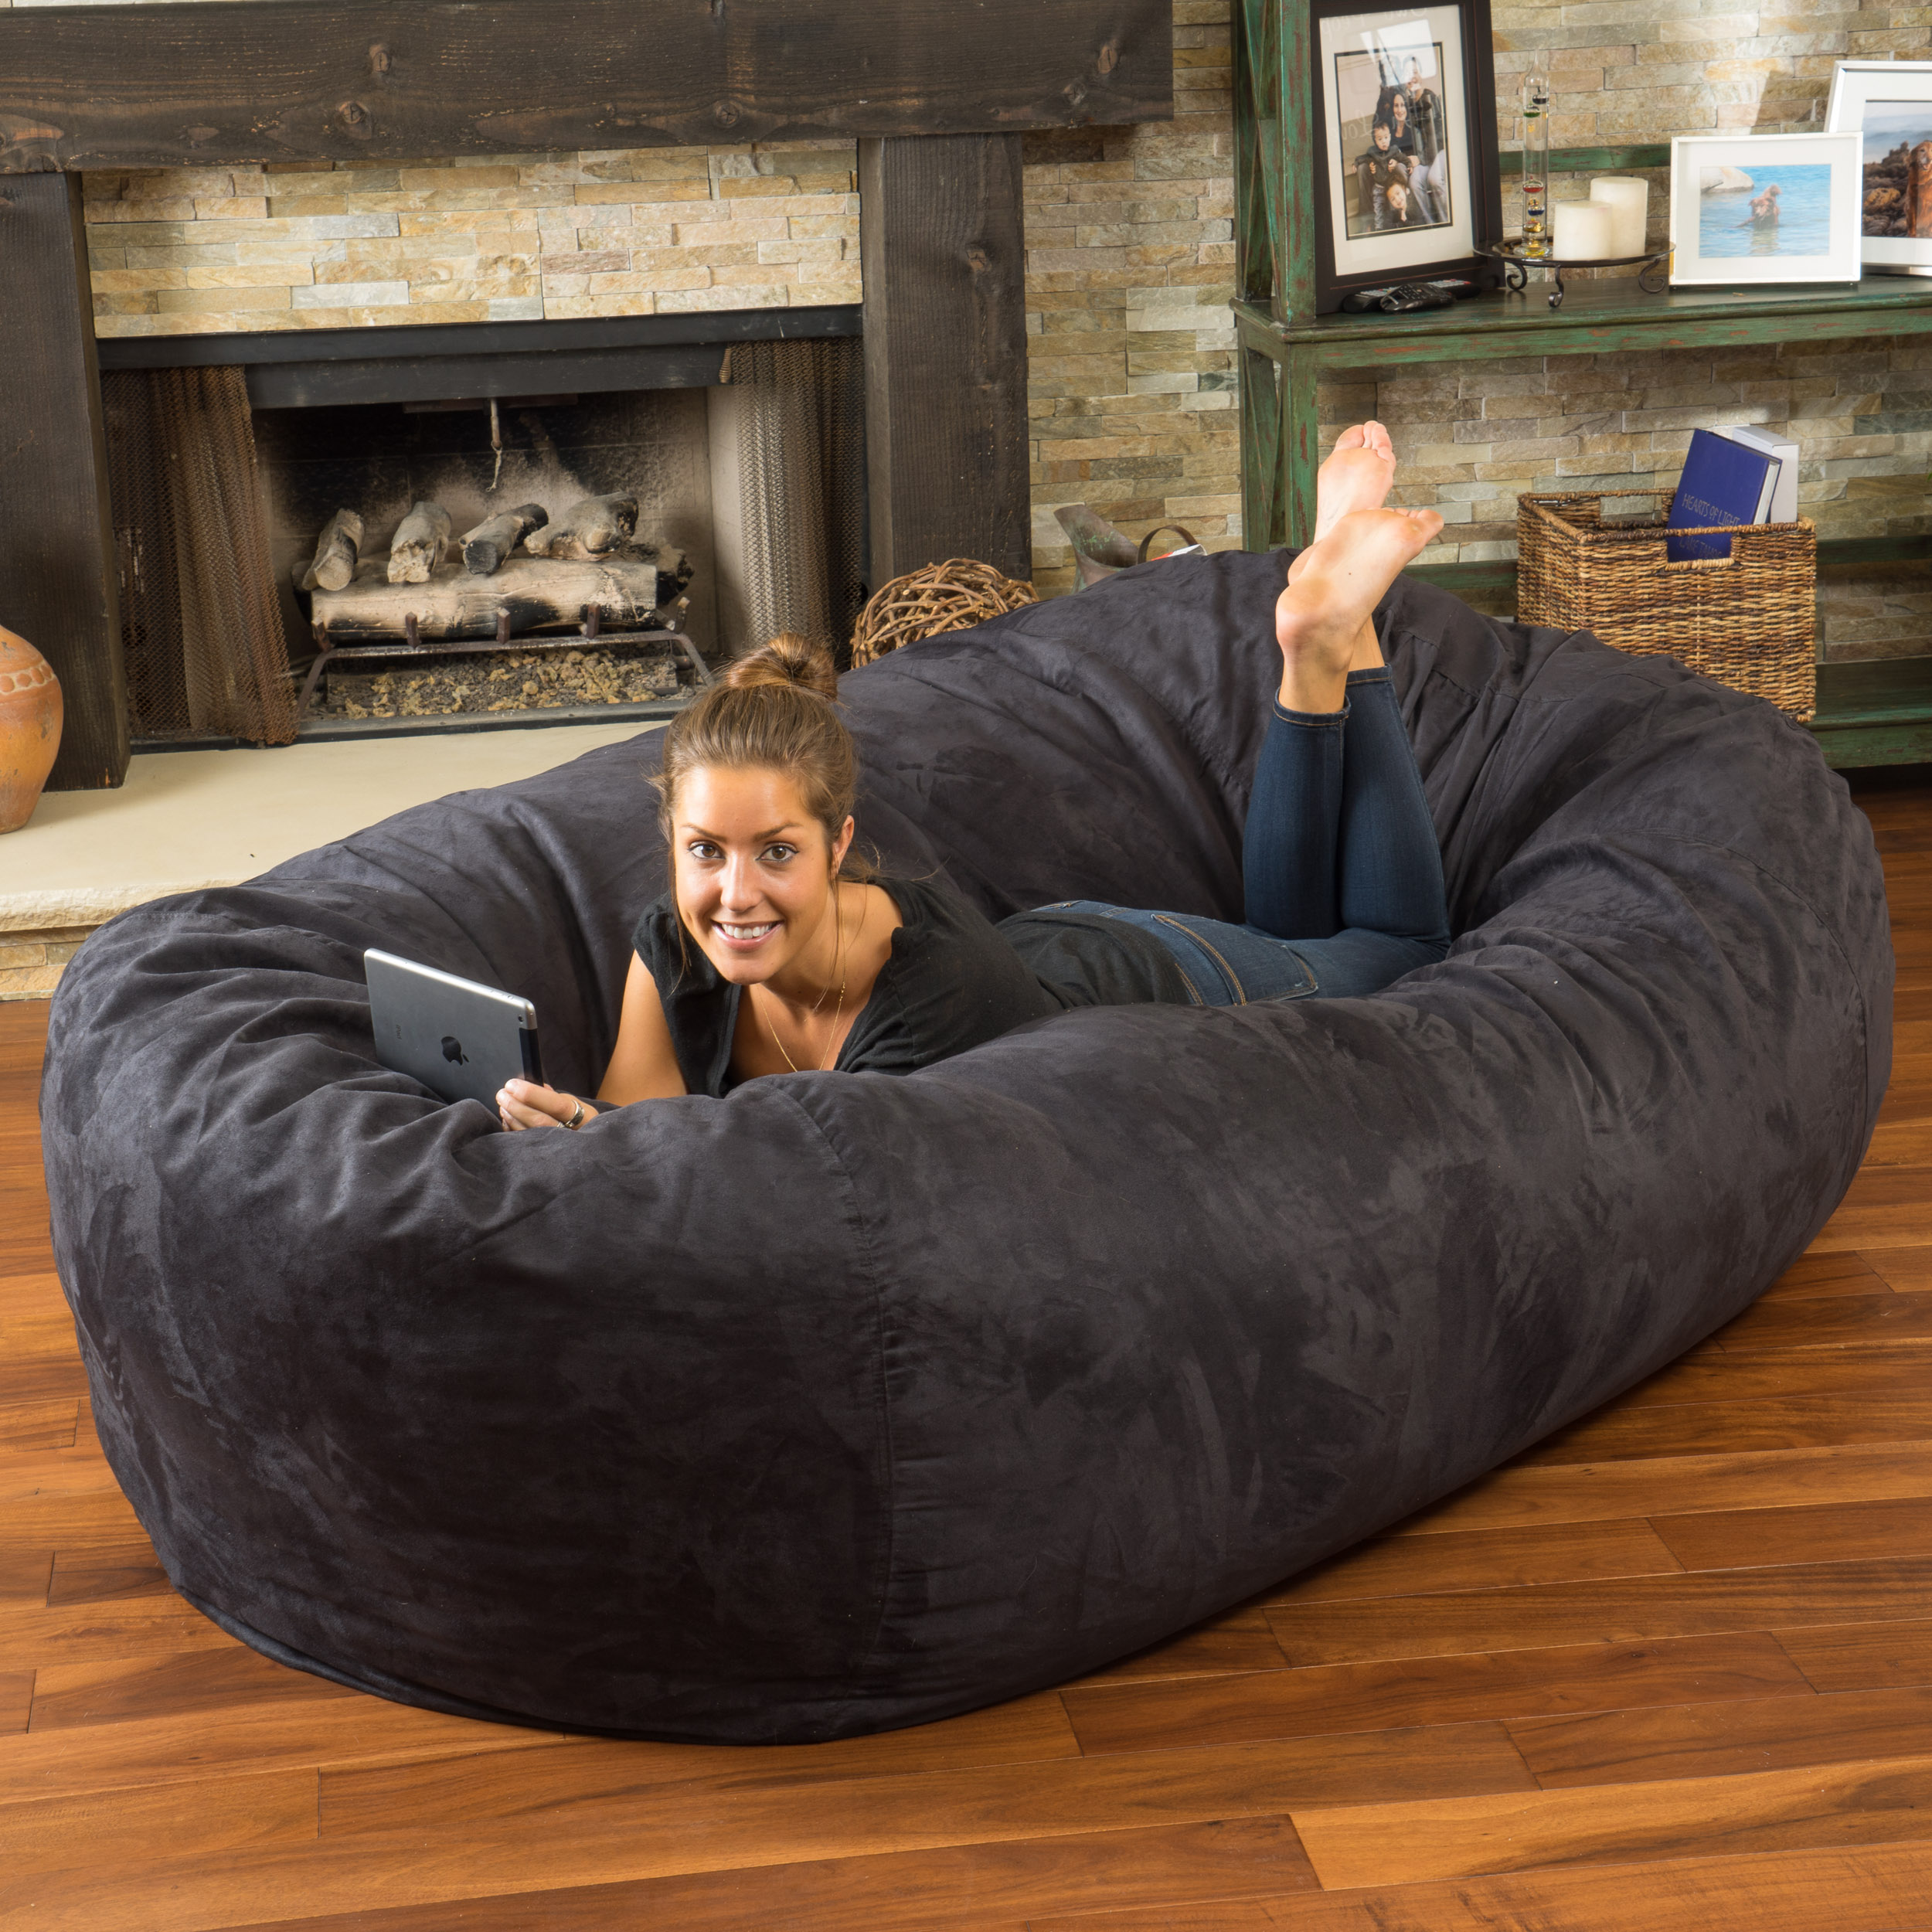 8 Ft Lounger Bean Bag Sofa Black Faux Suede Oversized Kids Lounge